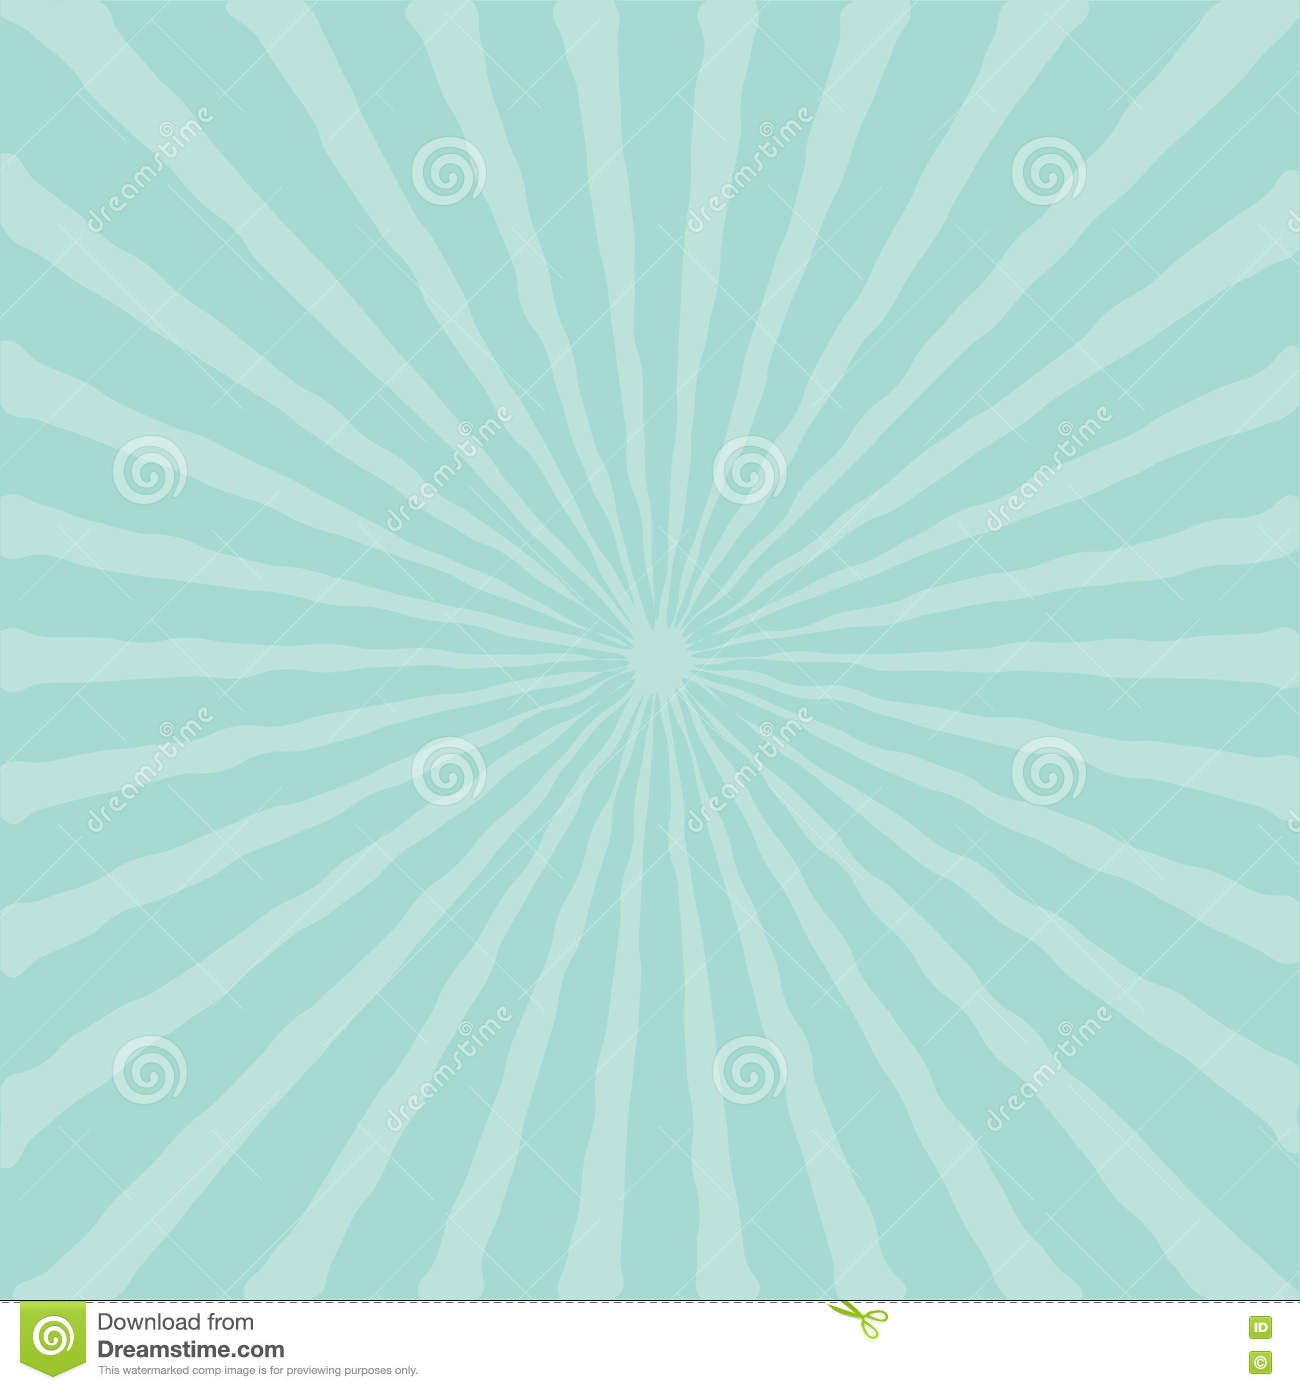 Blue Sunburst Starburst With Ray Of Light. Template ...